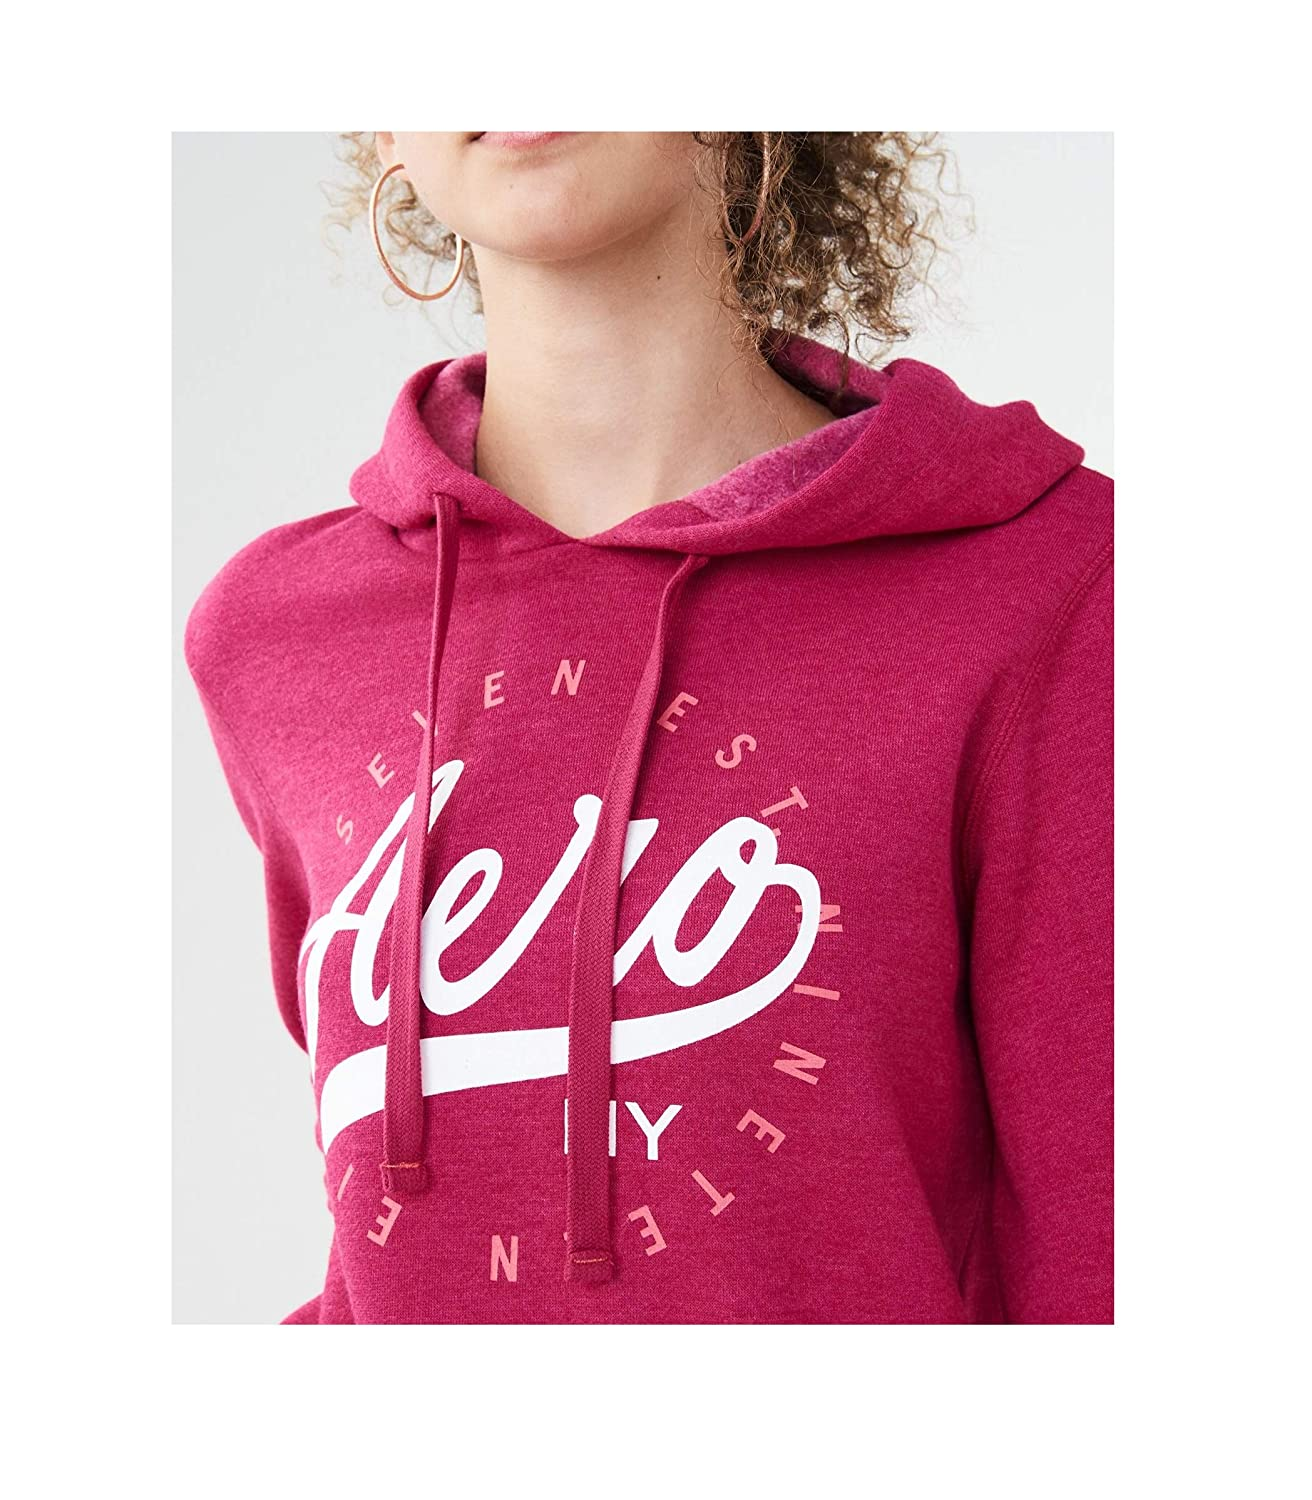 Amazon.com: Aéropostale Aeropostale Women Pullover and Full Zip Hoodie Aero York: Clothing